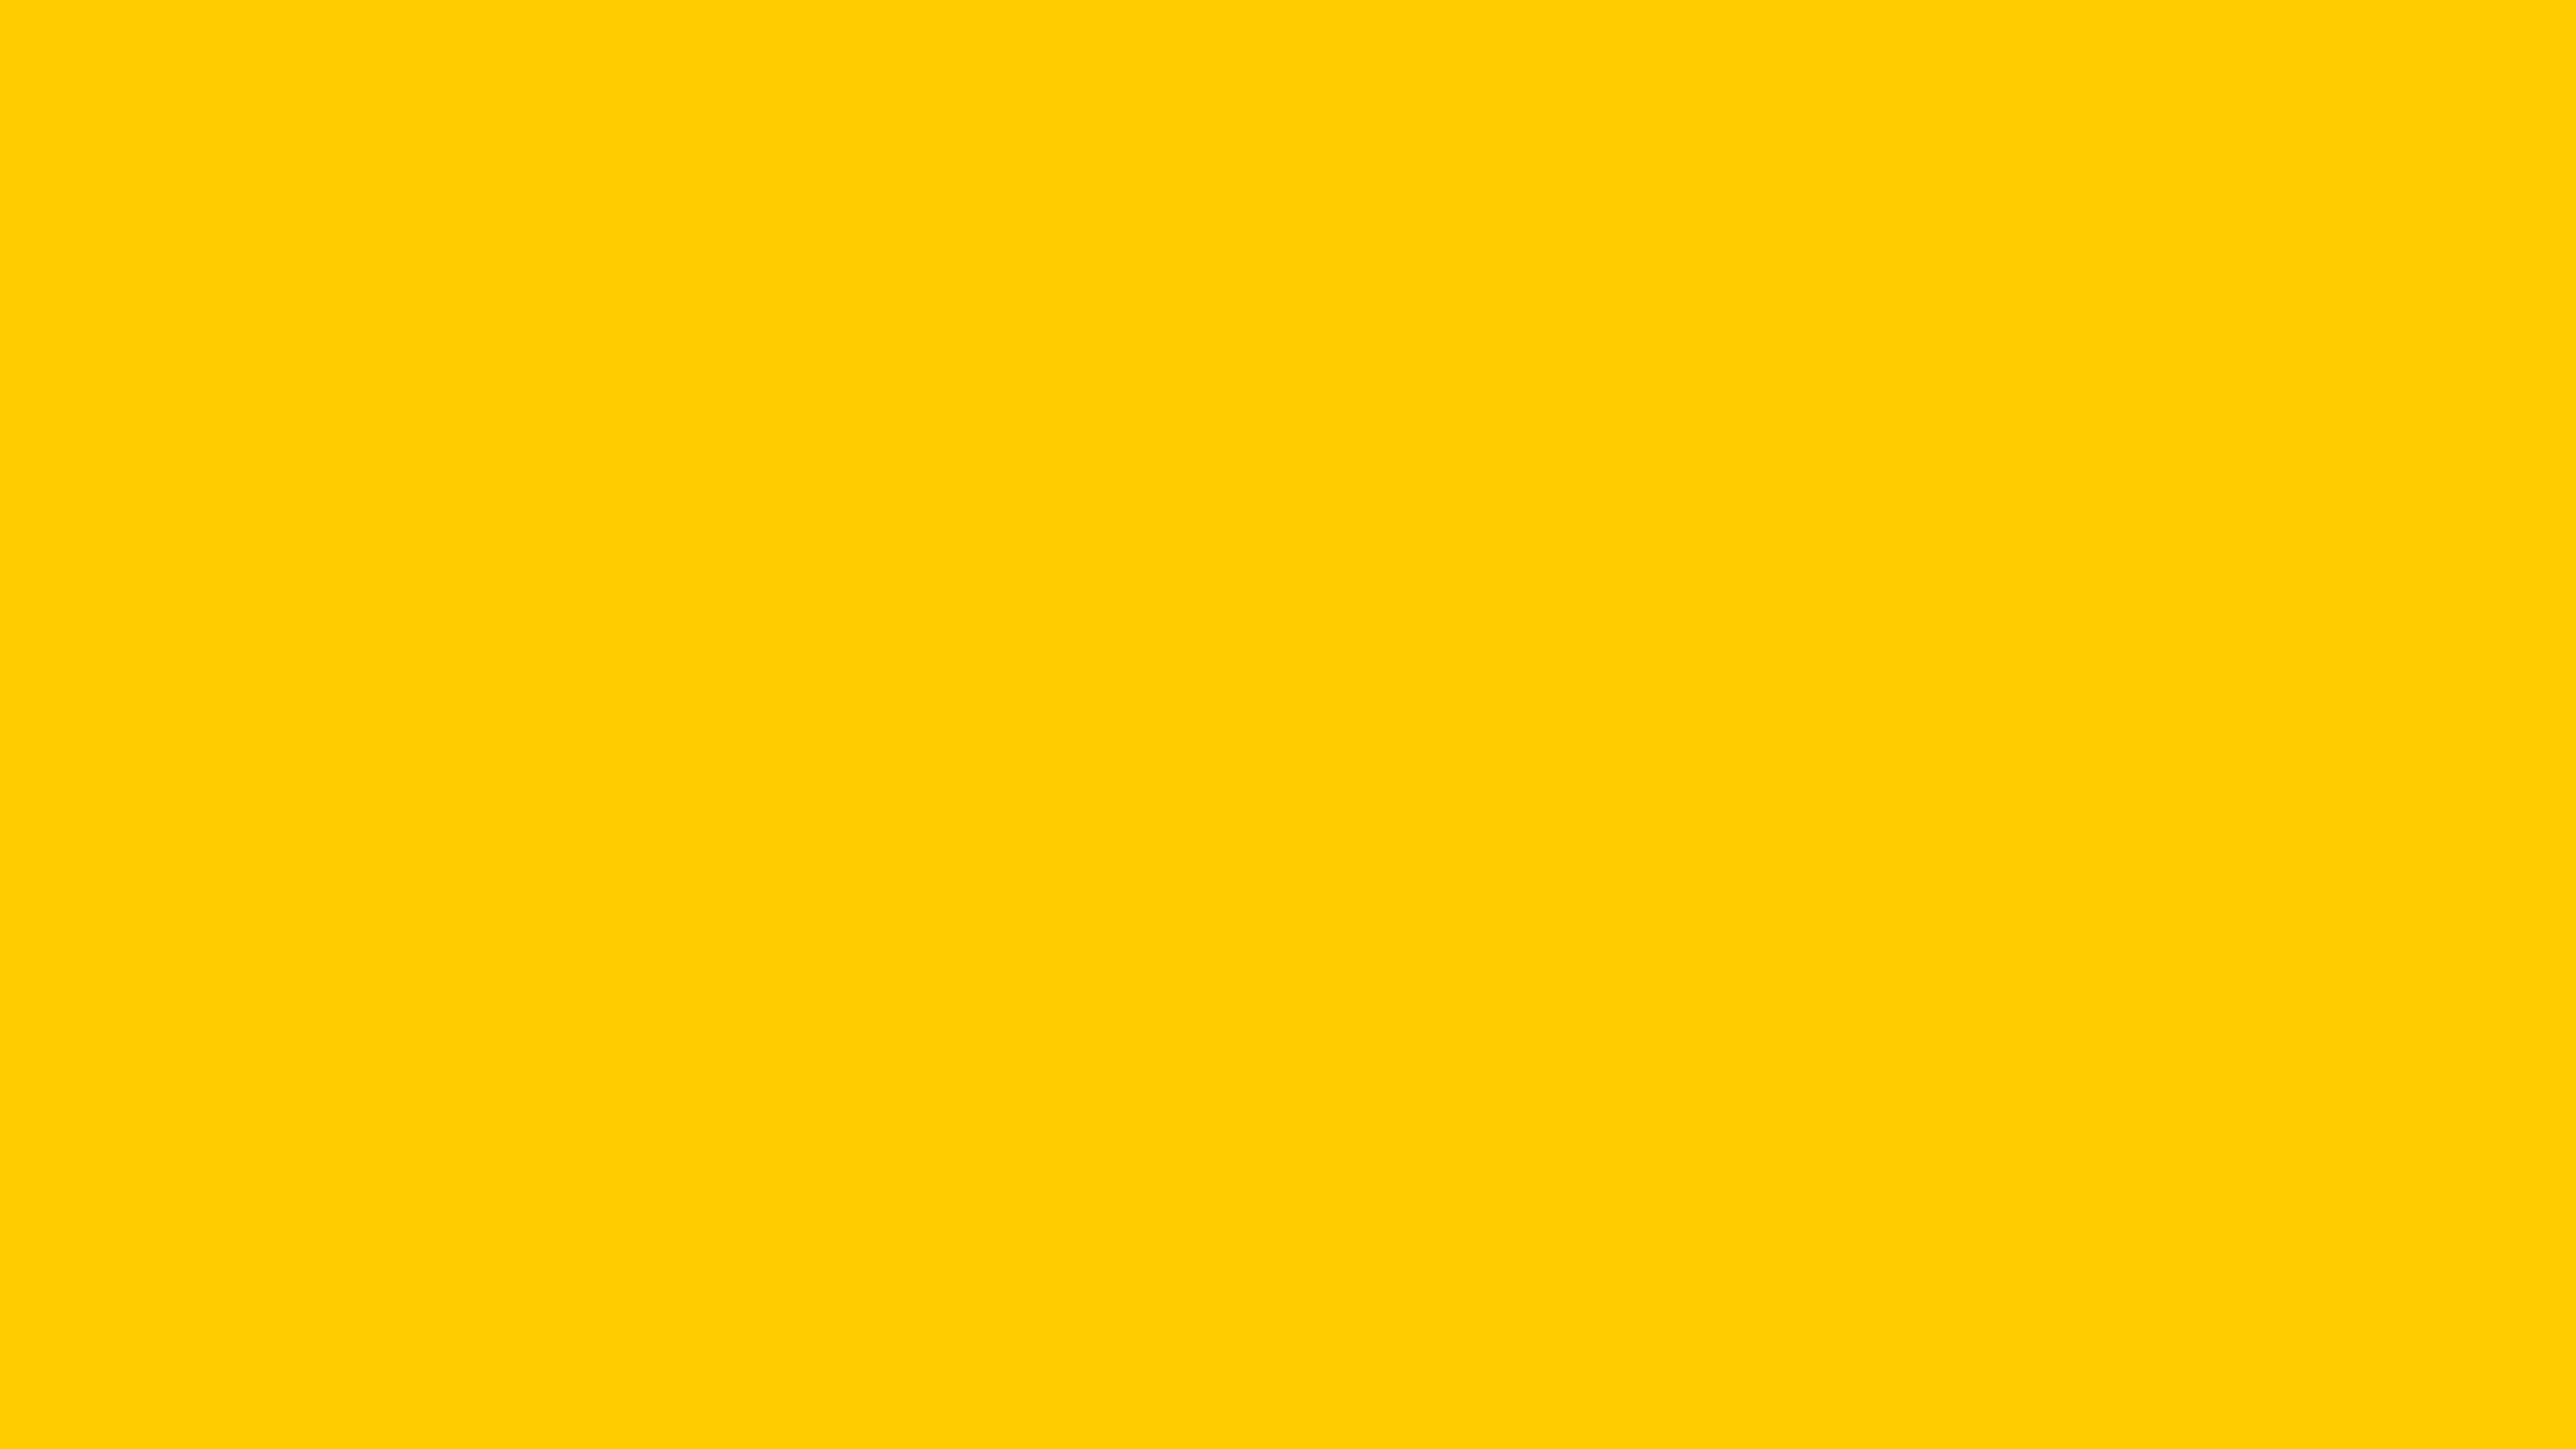 4096x2304 Tangerine Yellow Solid Color Background